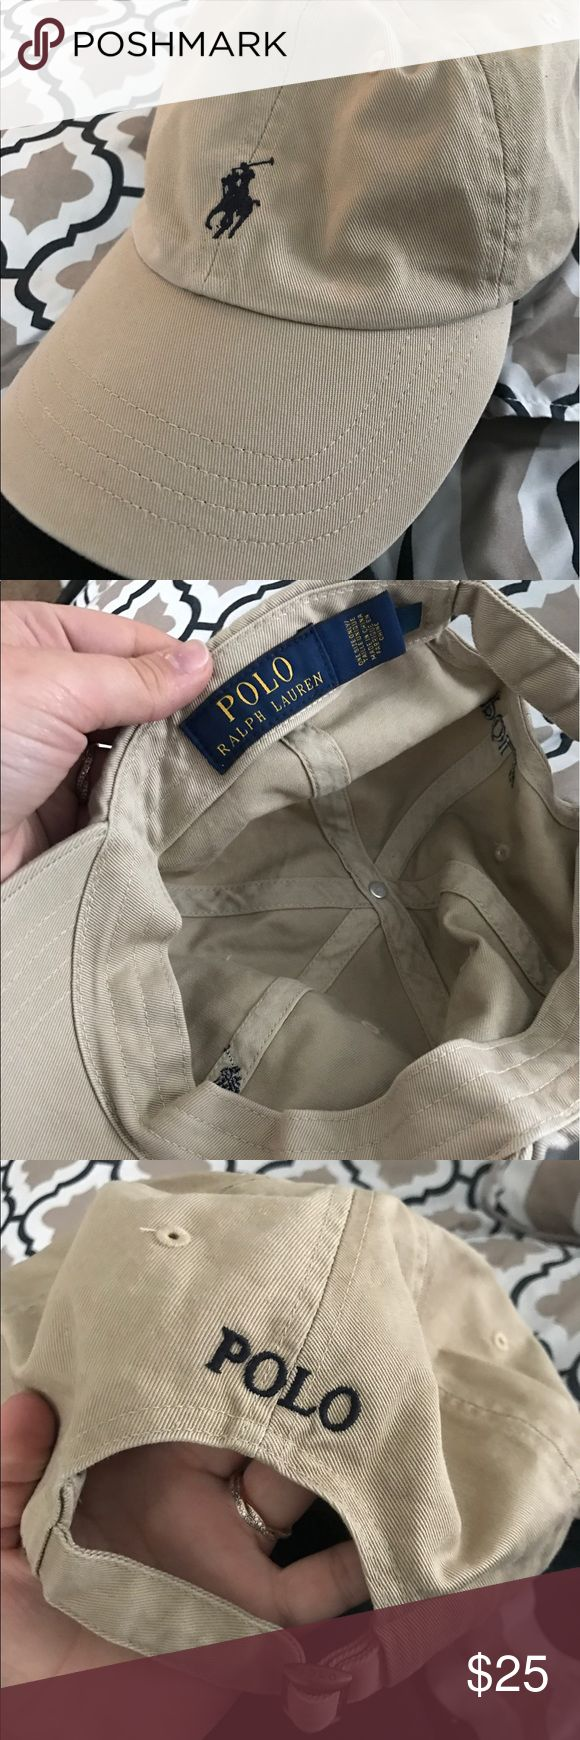 Ralph Lauren polo tan hat Ralph Lauren polo baseball cap. Worn once. Tan with navy accents. Adjustable. Polo by Ralph Lauren Other